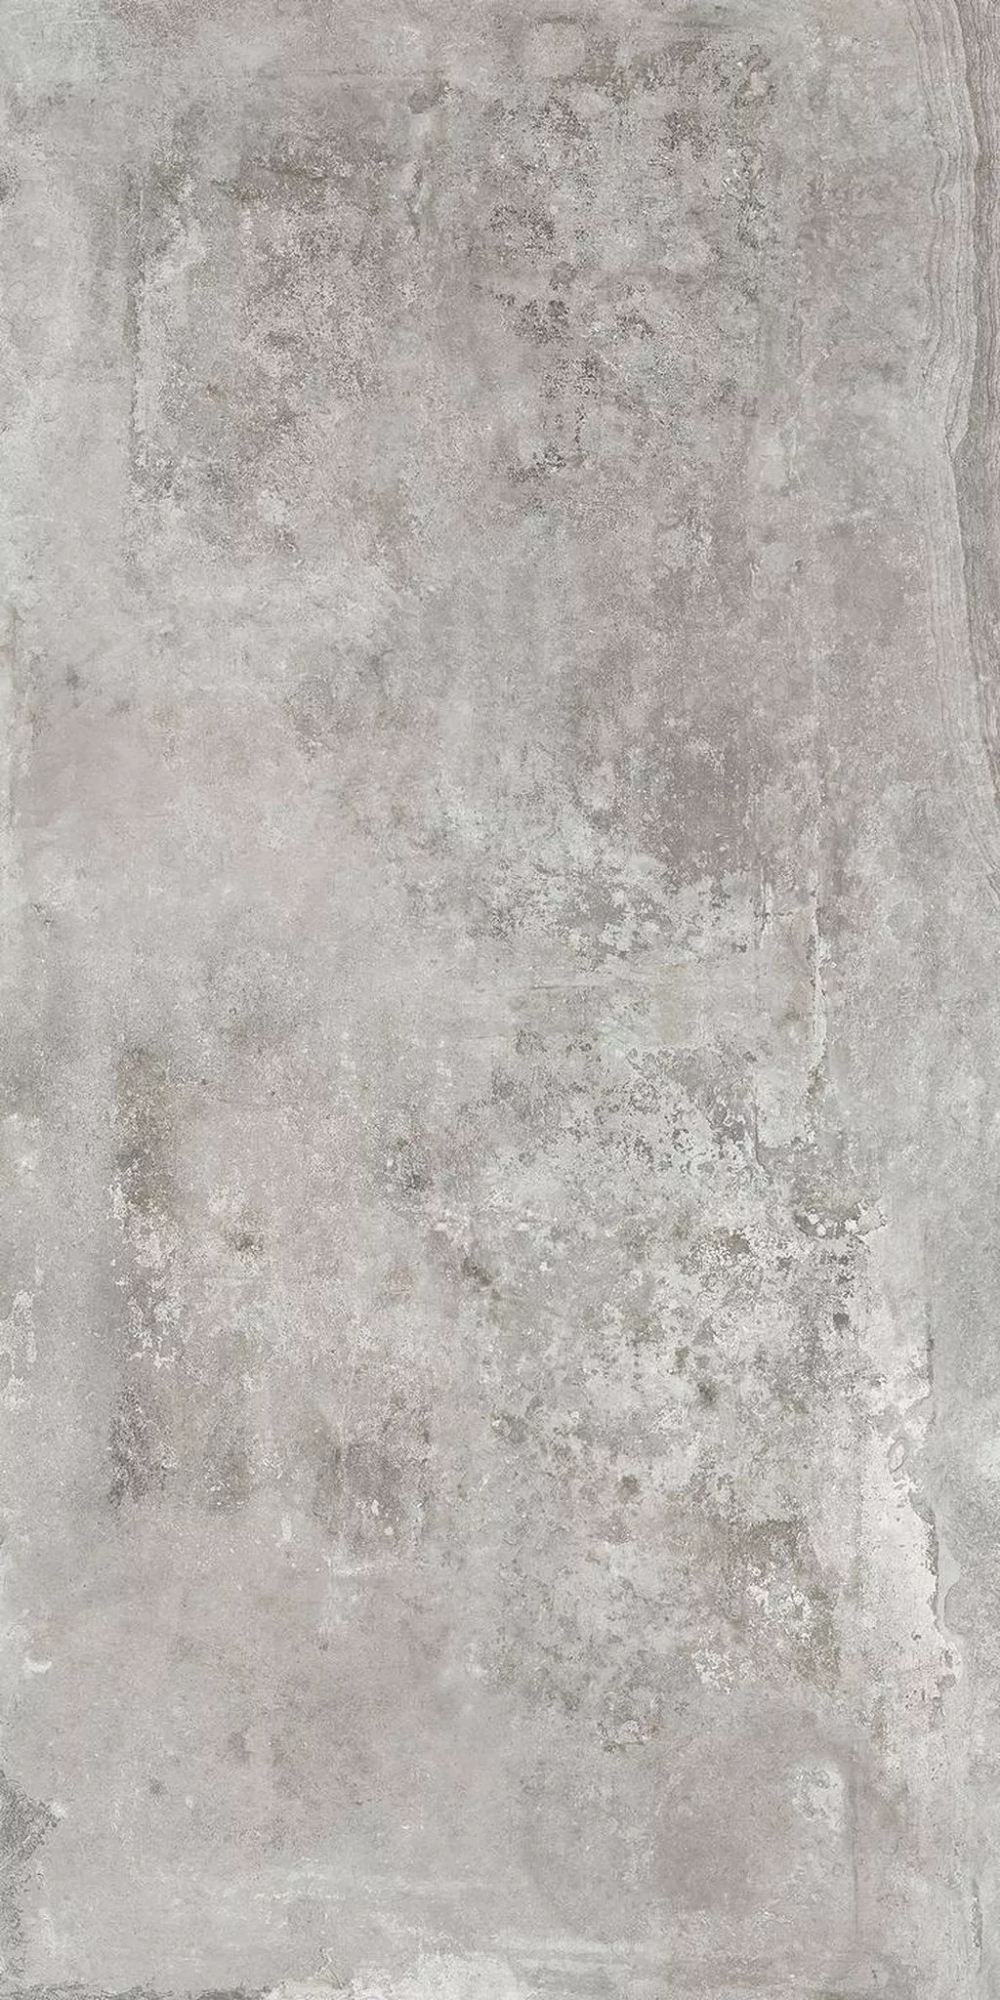 Awesome Wall And Floor Tile Texture Ideas In 2020 Tiles Texture Concrete Texture Textured Walls